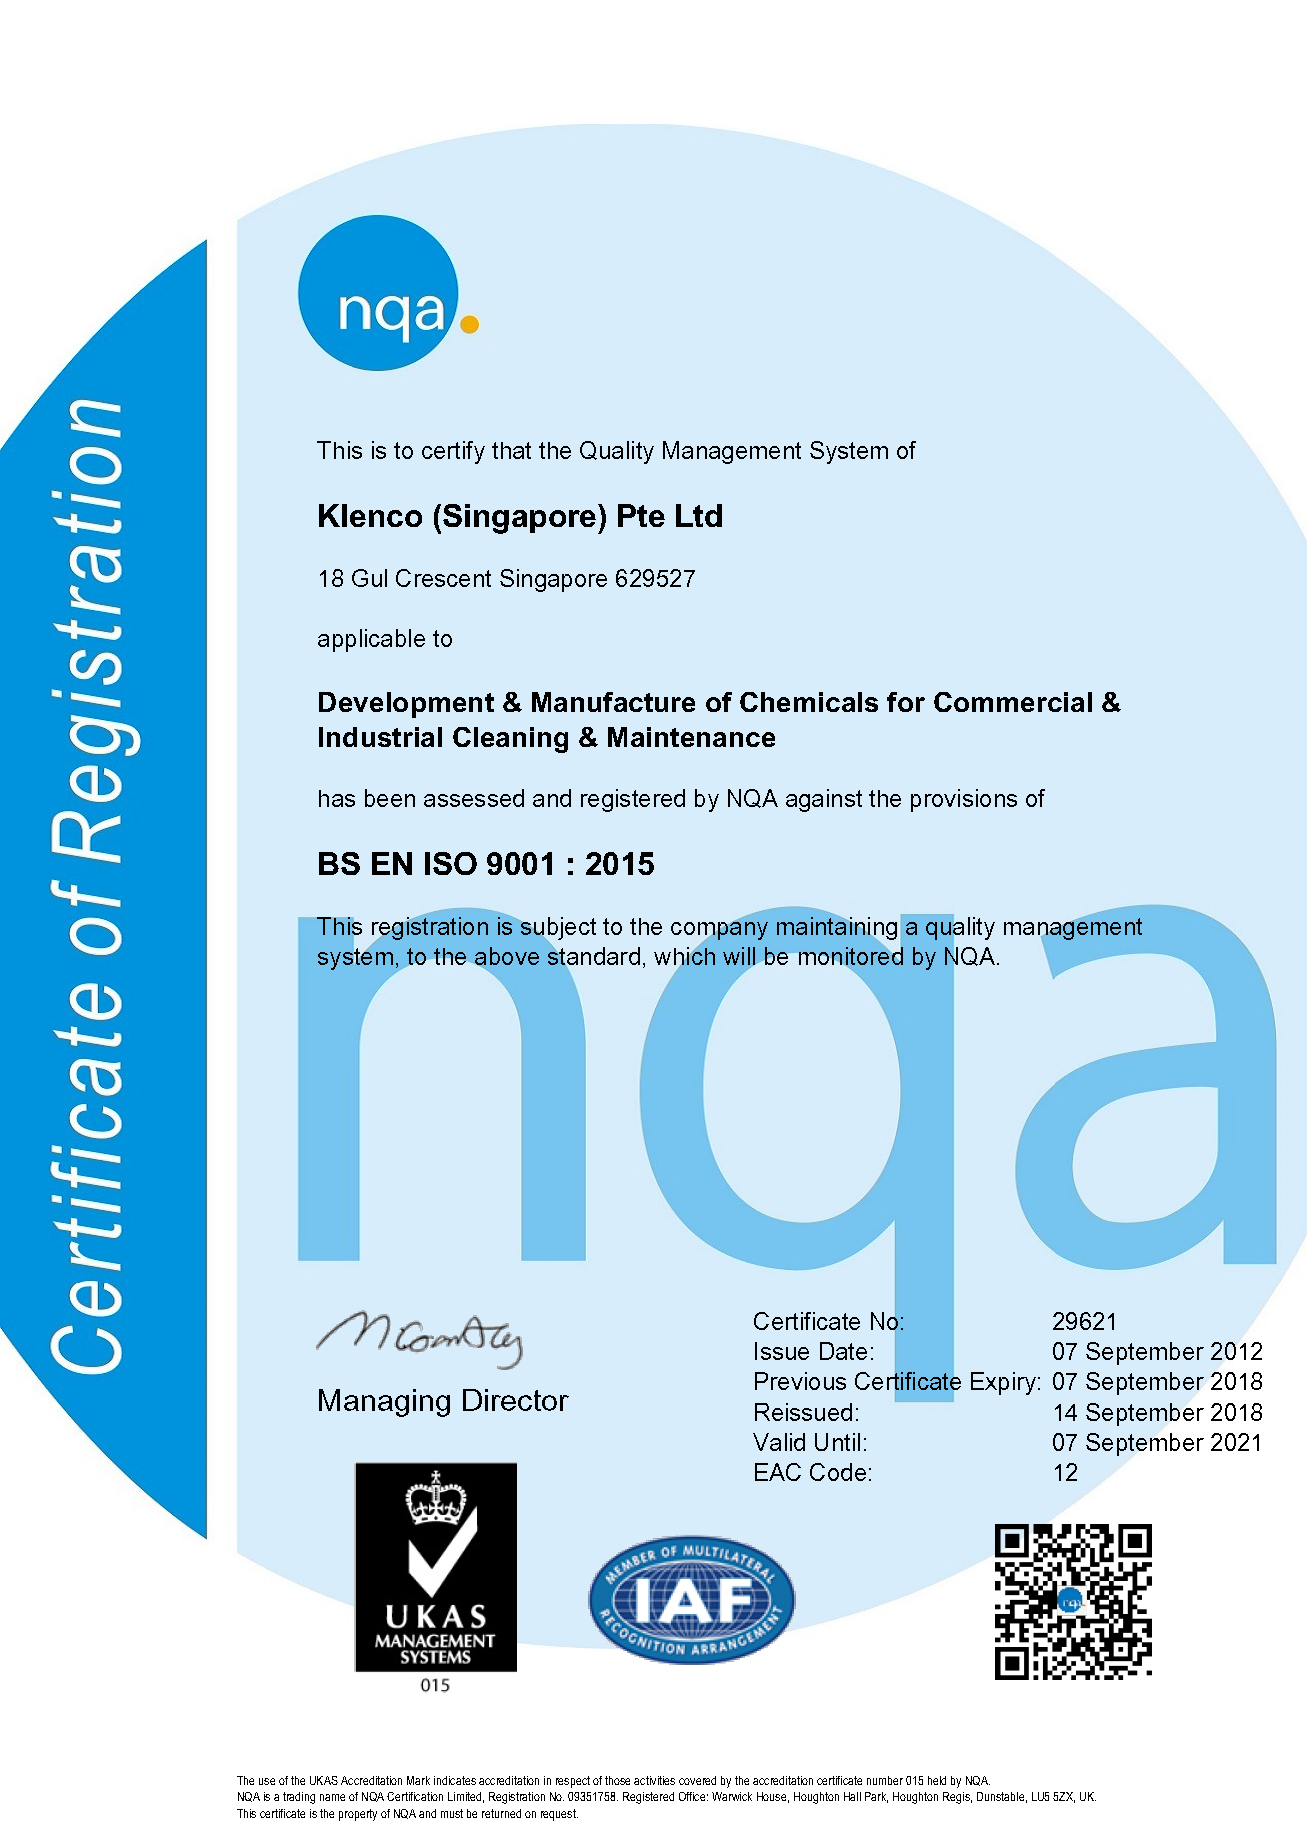 2018 QMS ISO 9001 Certificate